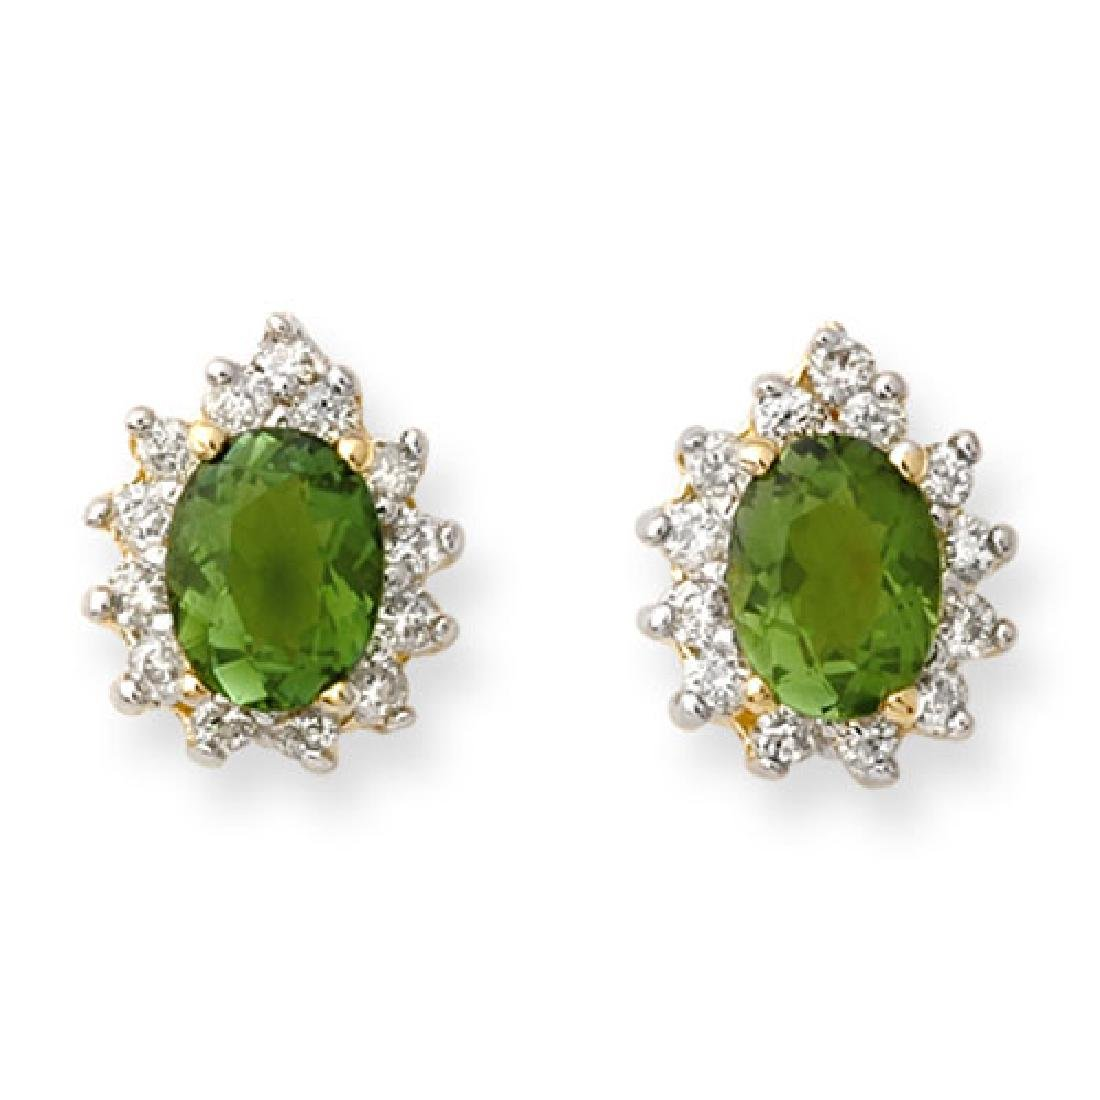 3.75 CTW Green Tourmaline & Diamond Earrings 14K Yellow